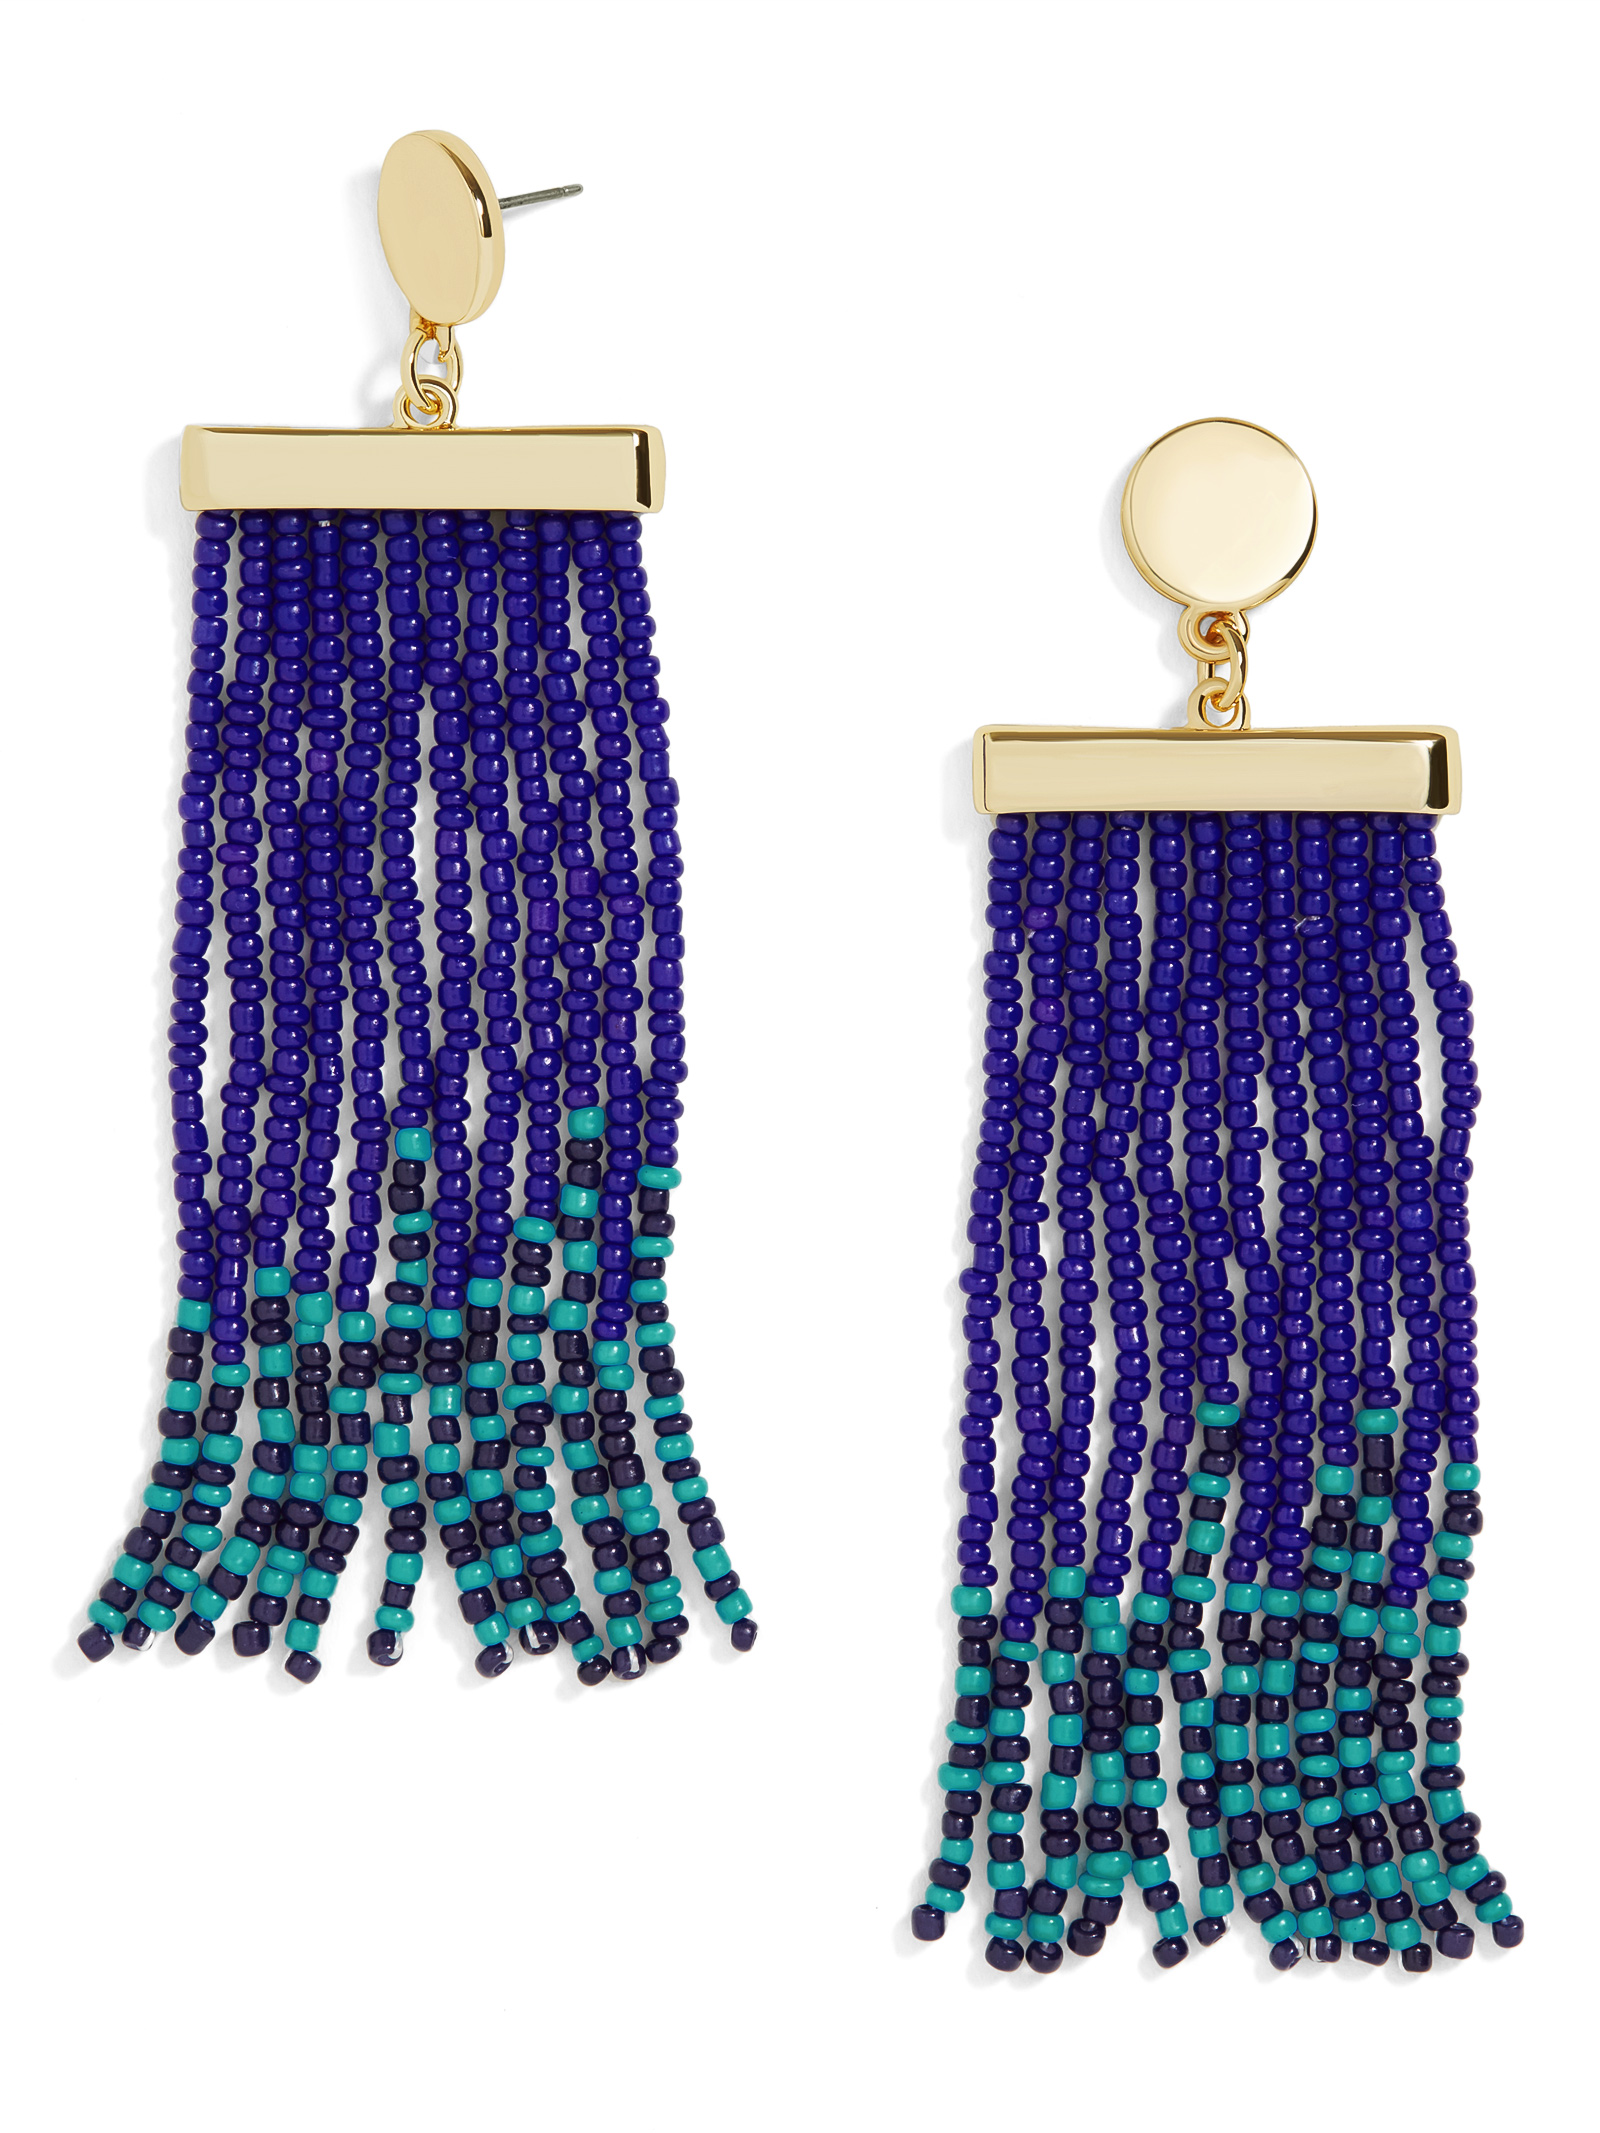 Neptune Tassel Earrings